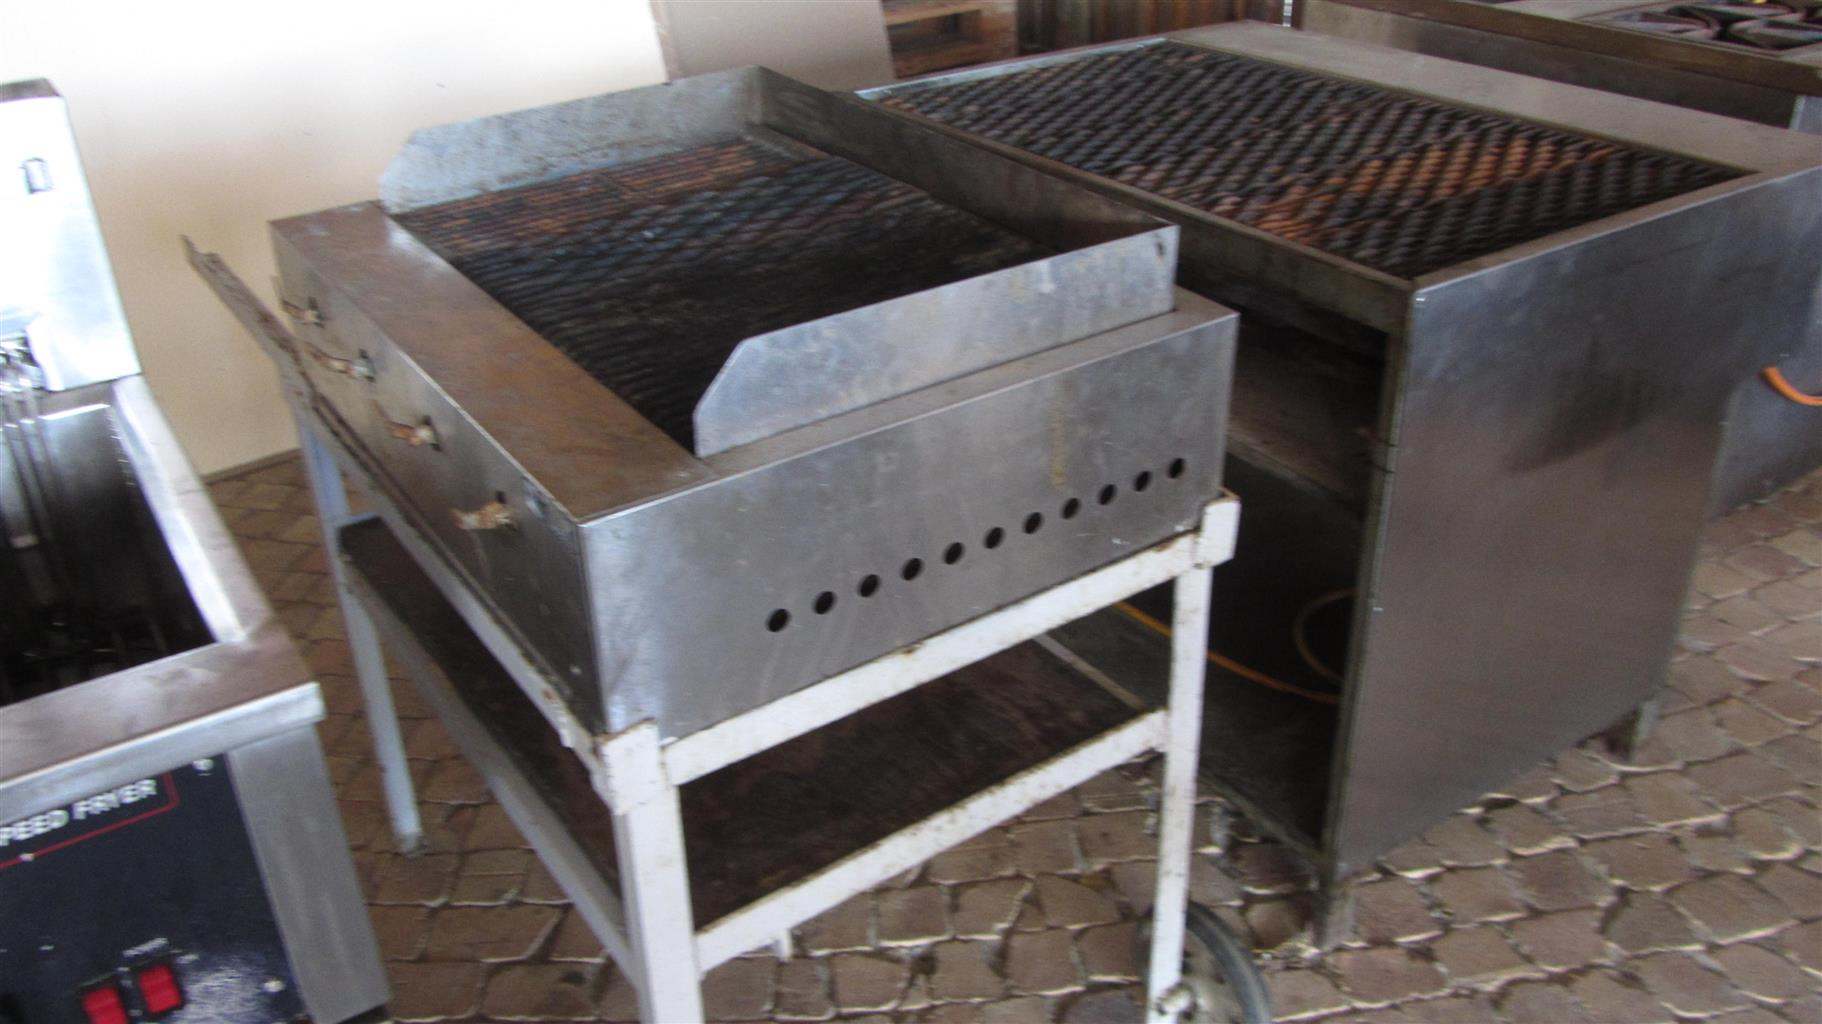 Catering Equipment for sale!!